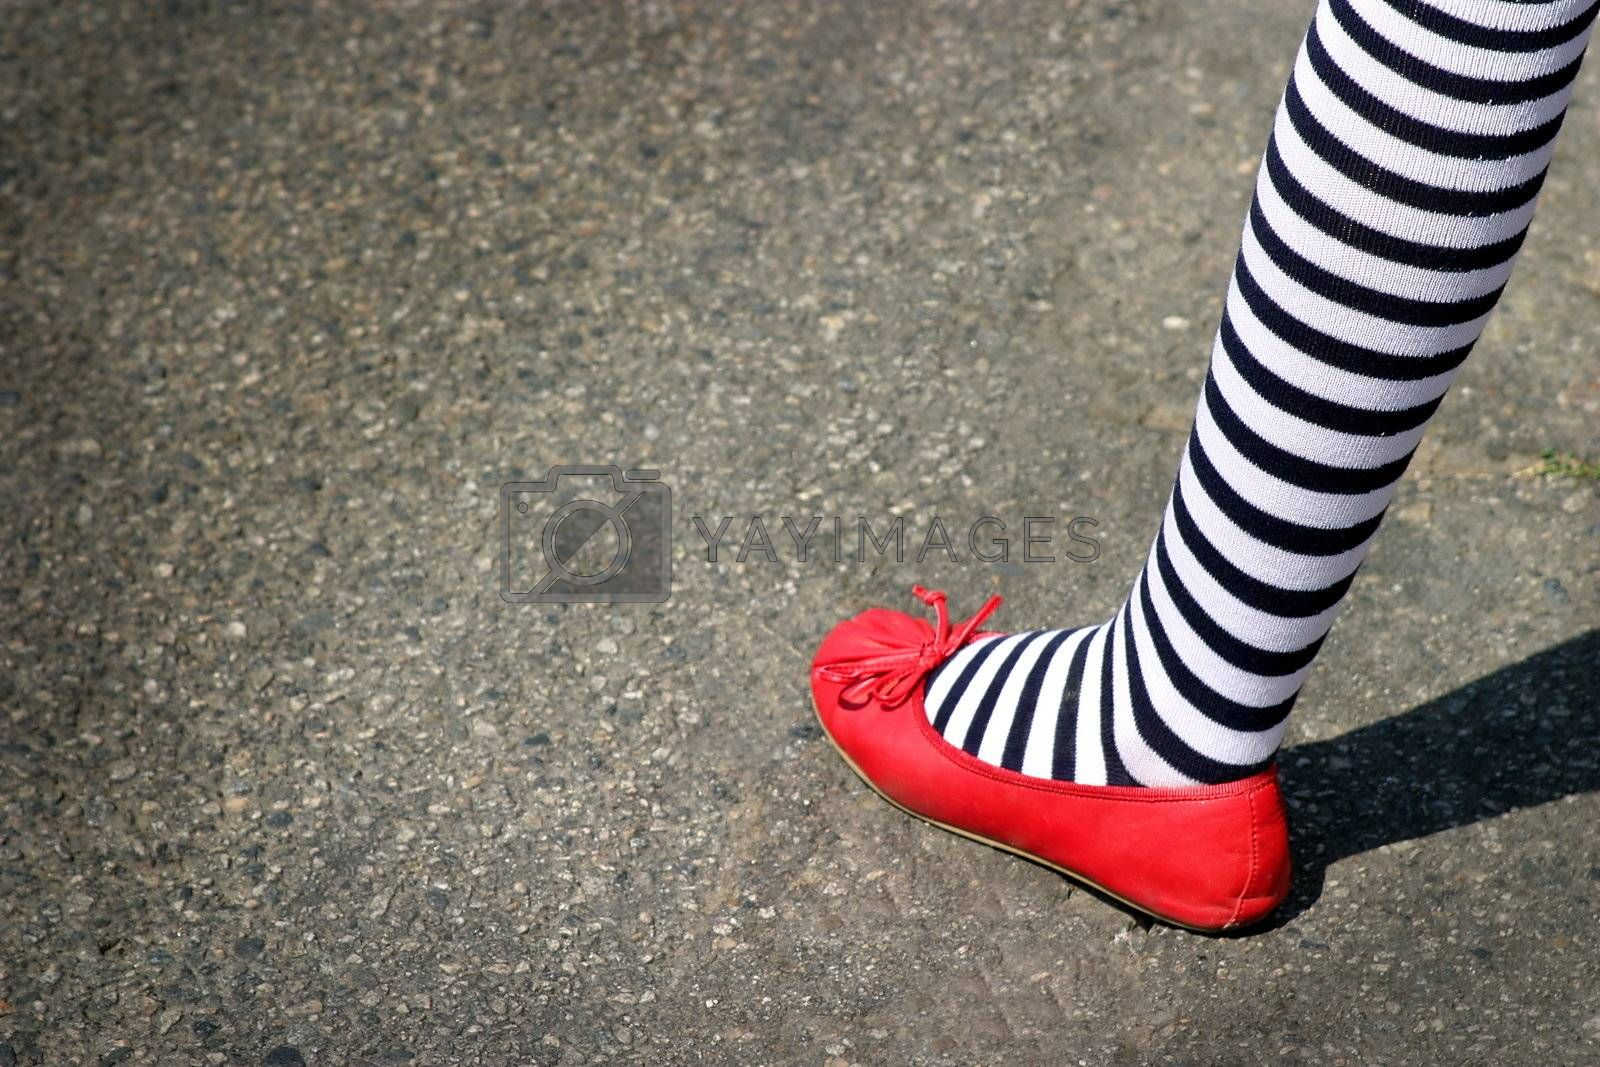 Patriotic foot with red shoe and blue white striped sock.